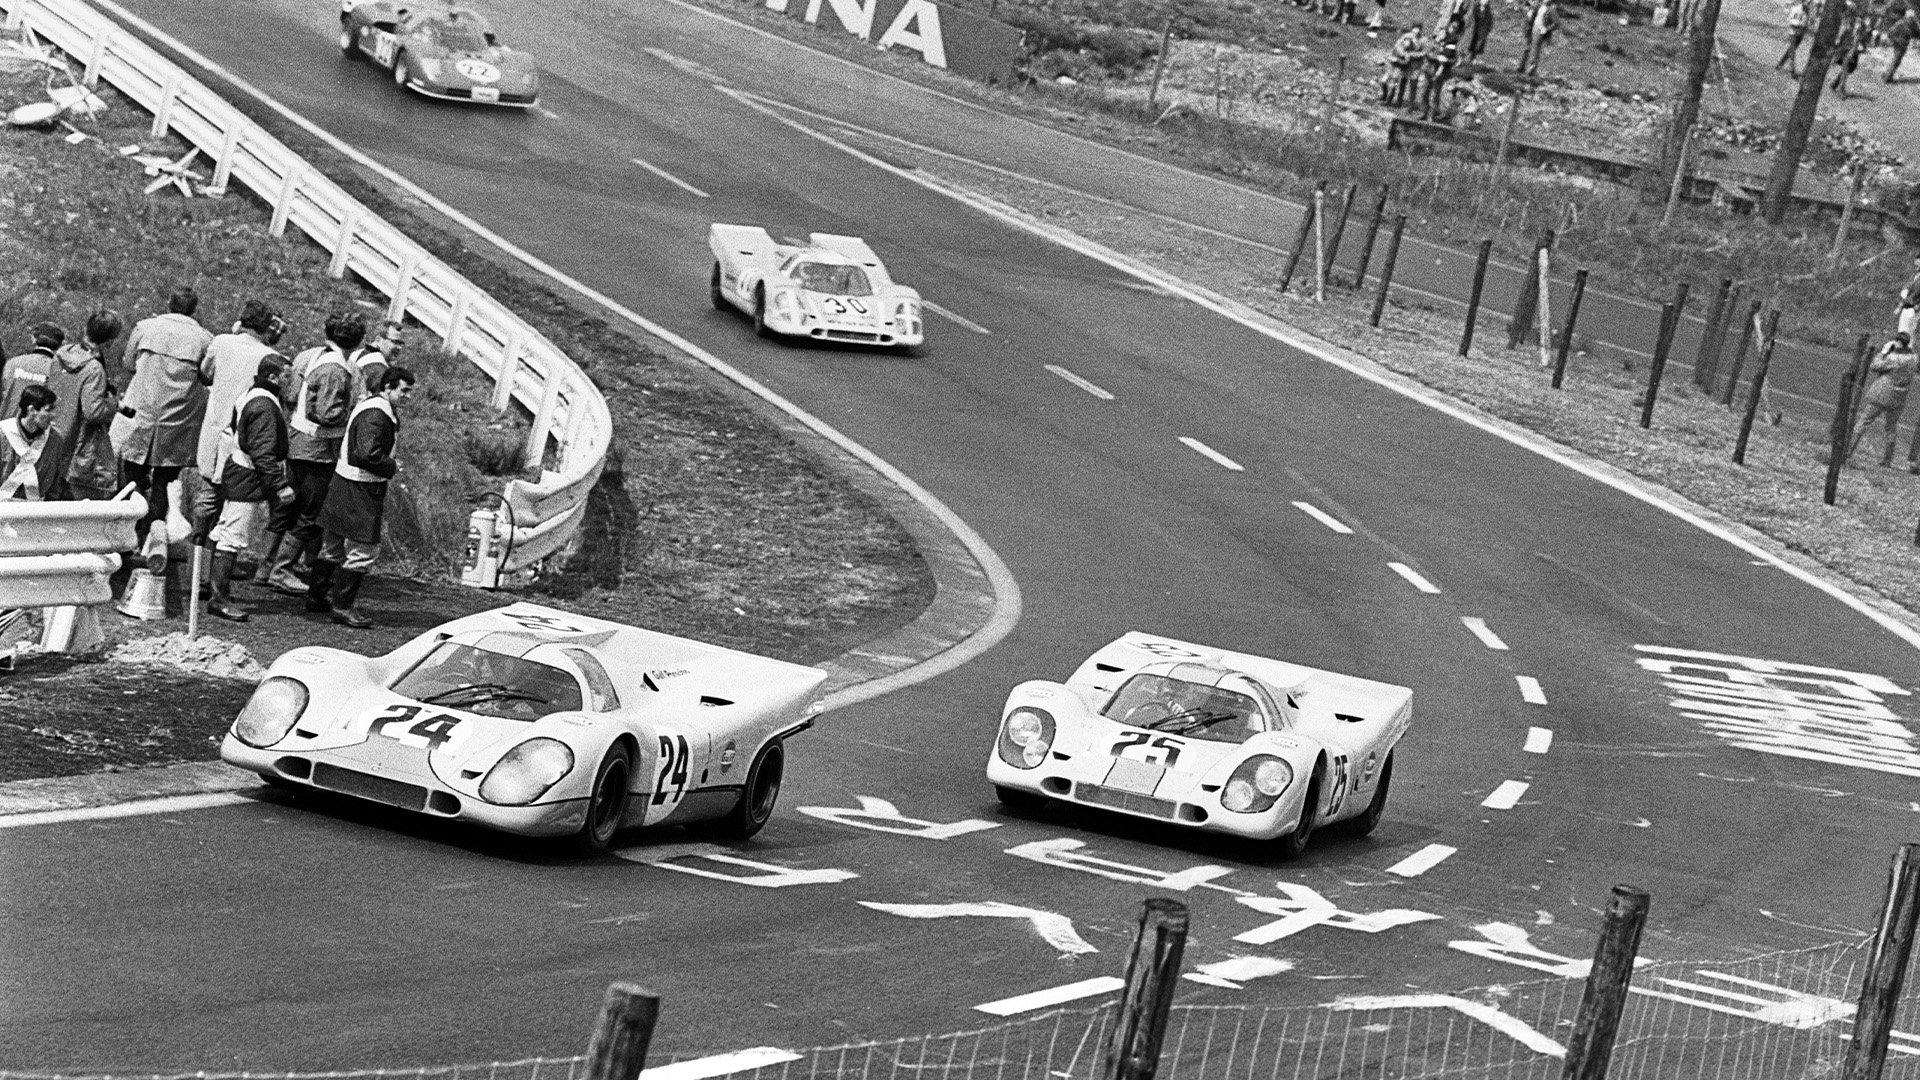 Jo Siffert leads Pedro Rodriguez at the start of the 1970 1000Kms of Spa